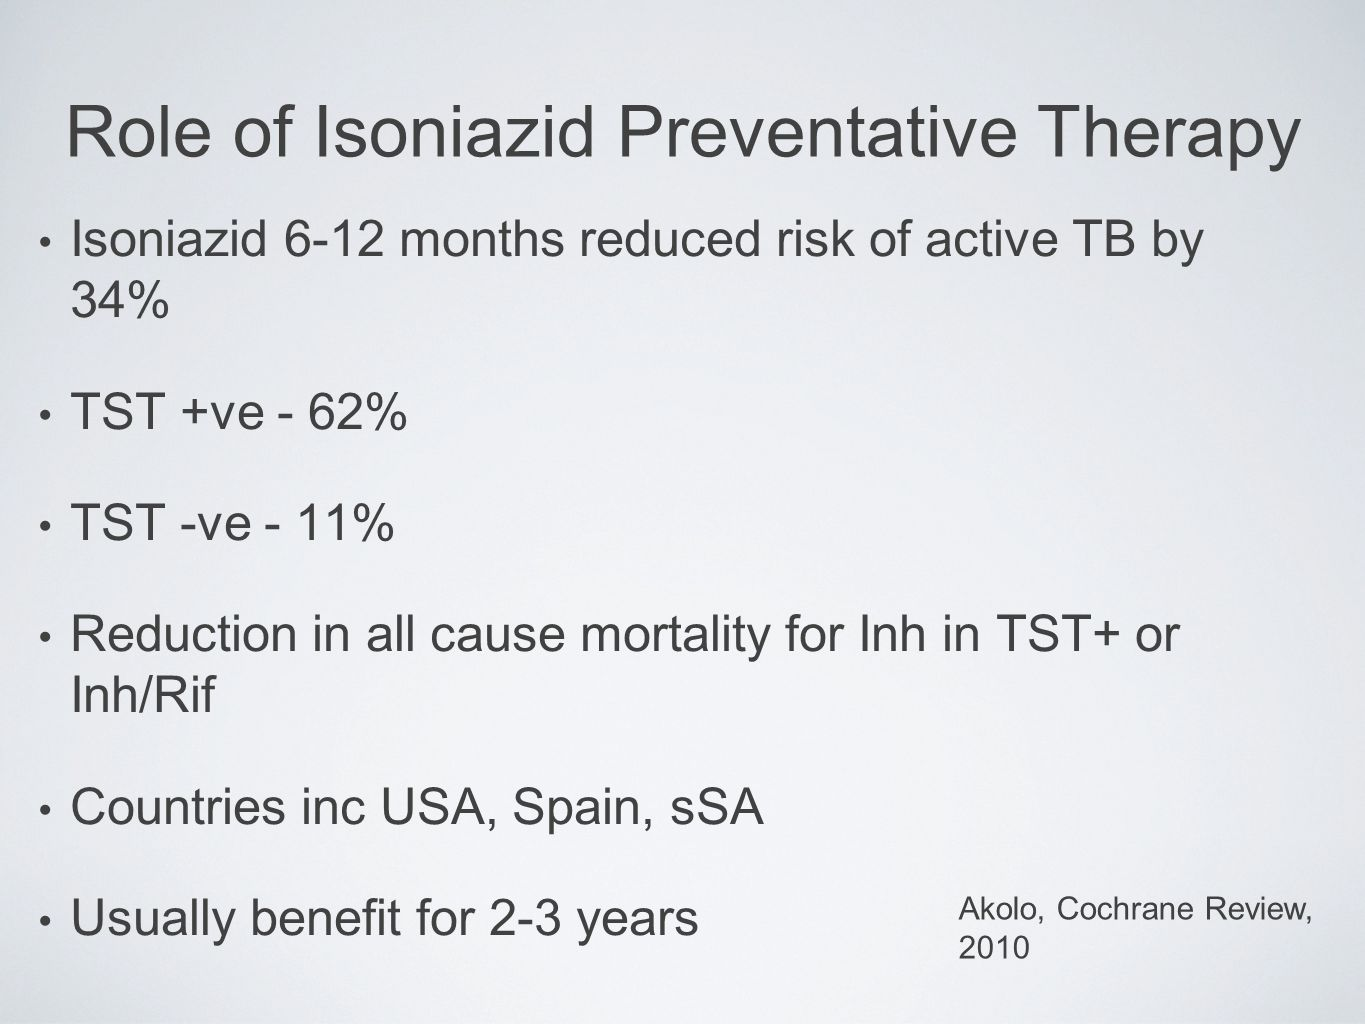 Isoniazid 6-12 months reduced risk of active TB by 34% TST +ve - 62% TST -ve - 11% Reduction in all cause mortality for Inh in TST+ or Inh/Rif Countri